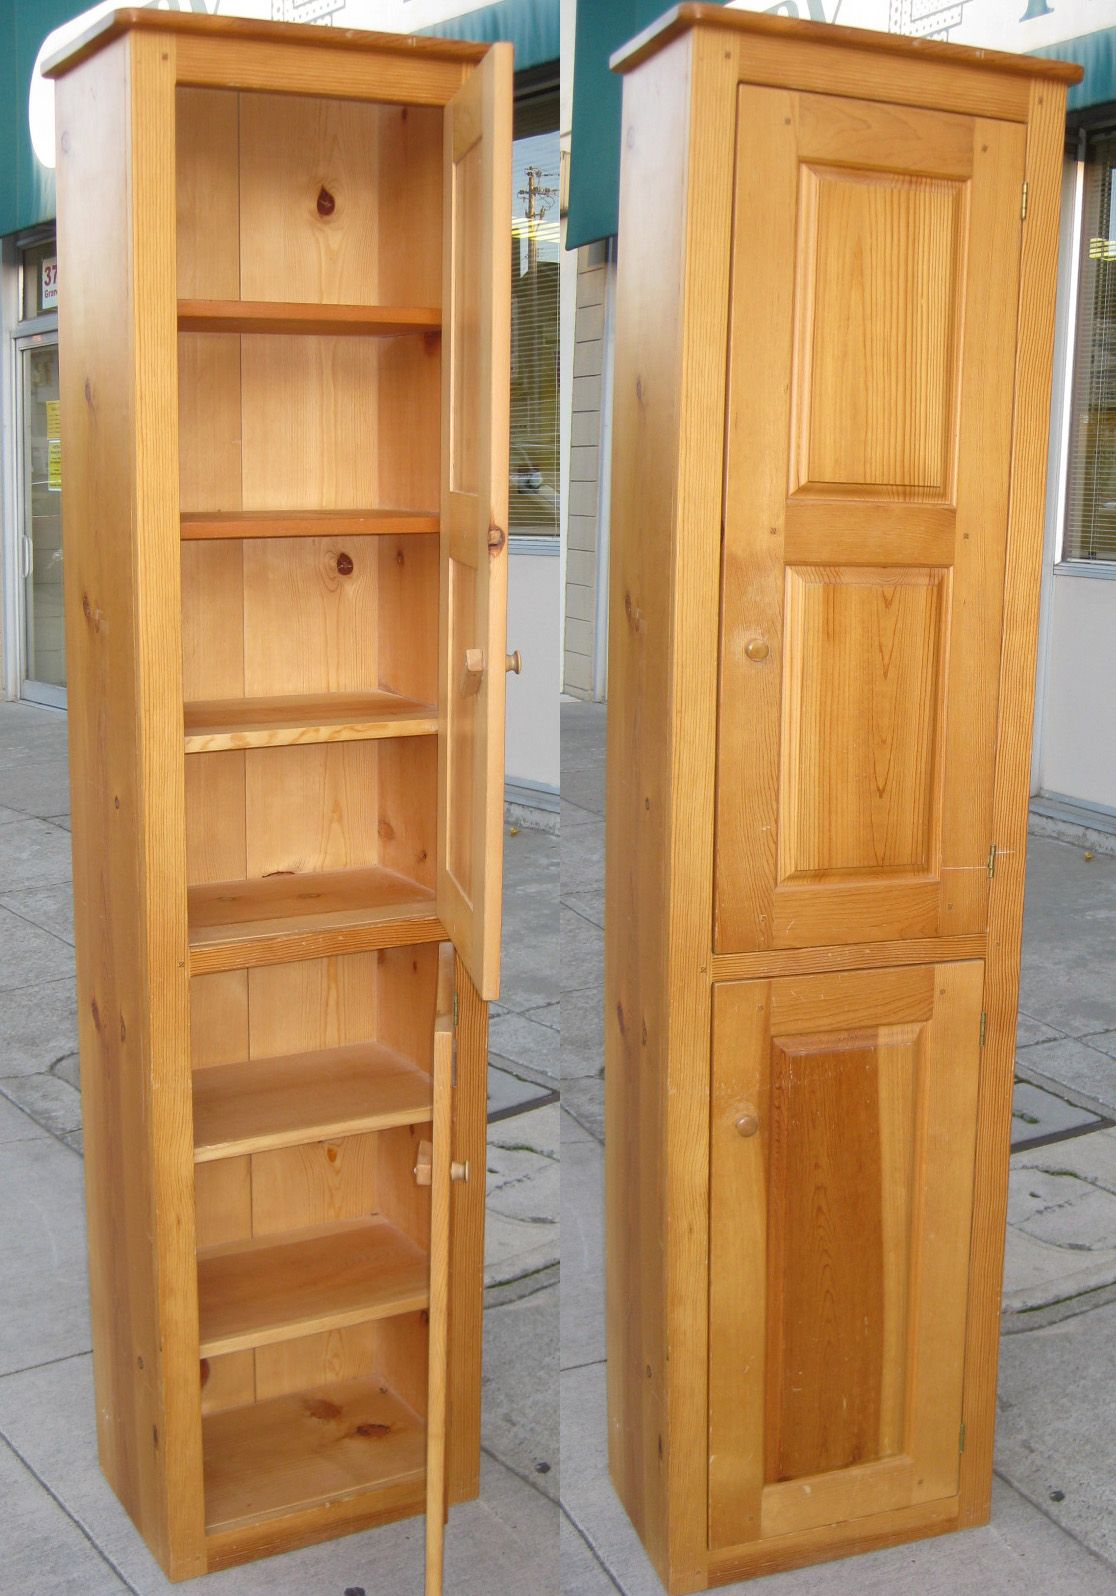 Tall Narrow Cabinet With Doors The Pictures Below Show The Cabinet